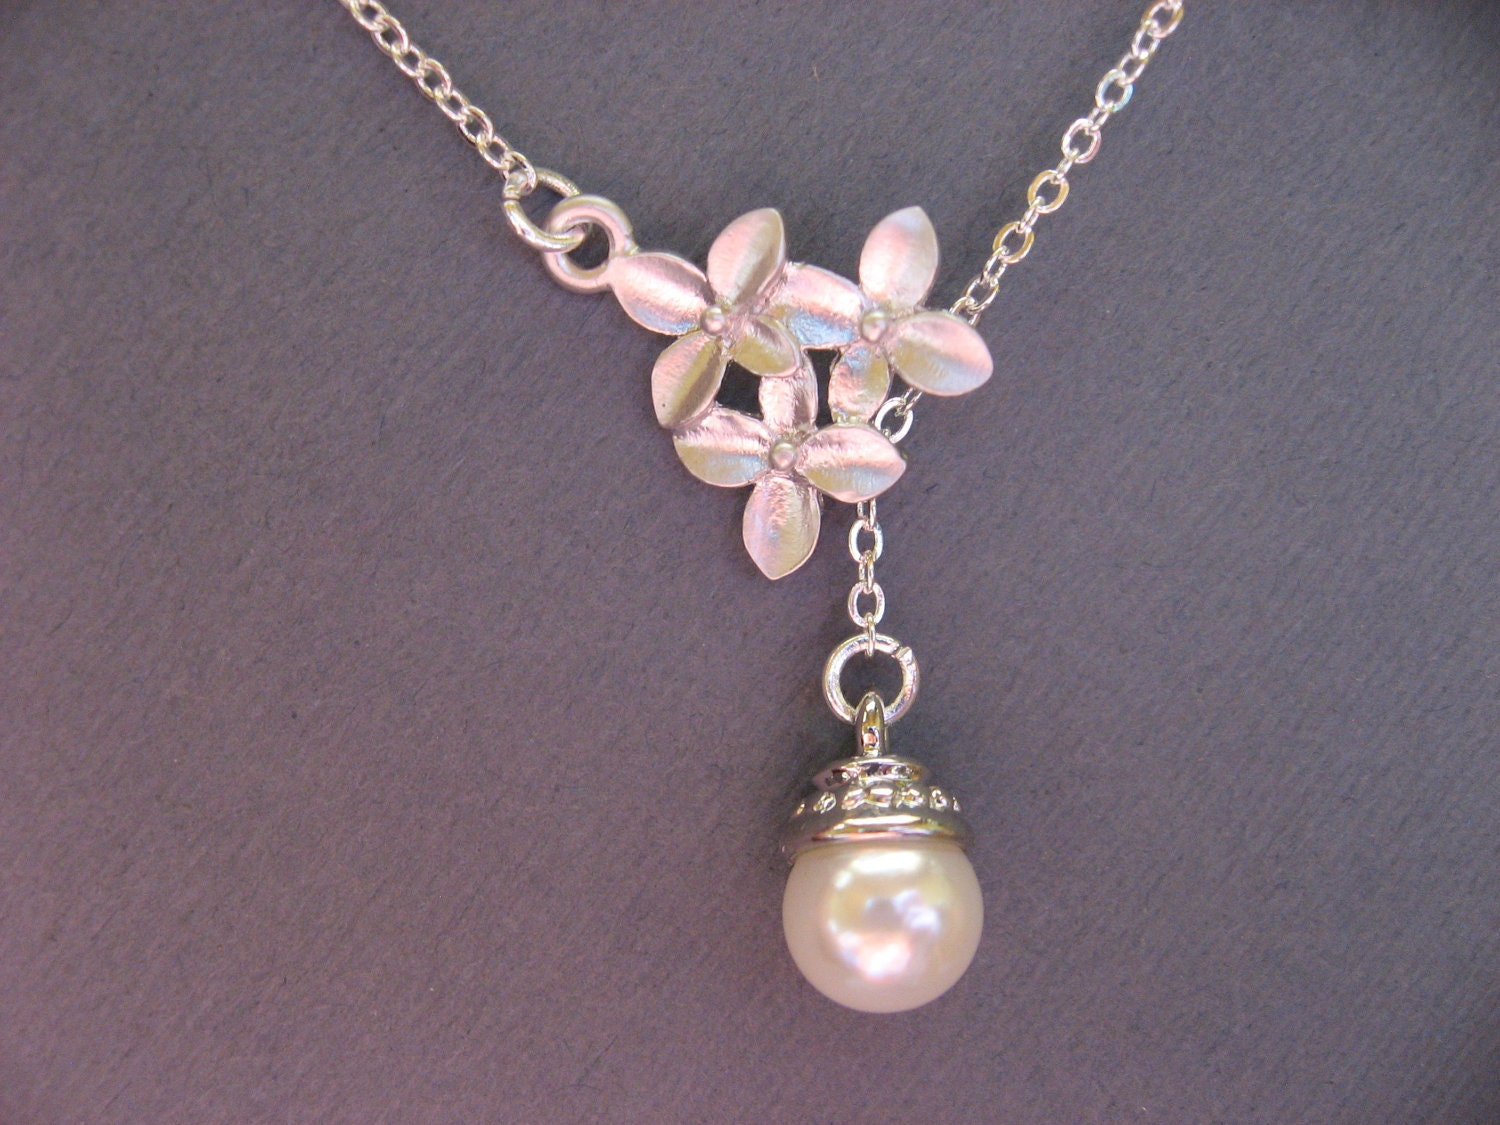 cherry blossom necklace with pearl pendant everyday casual or